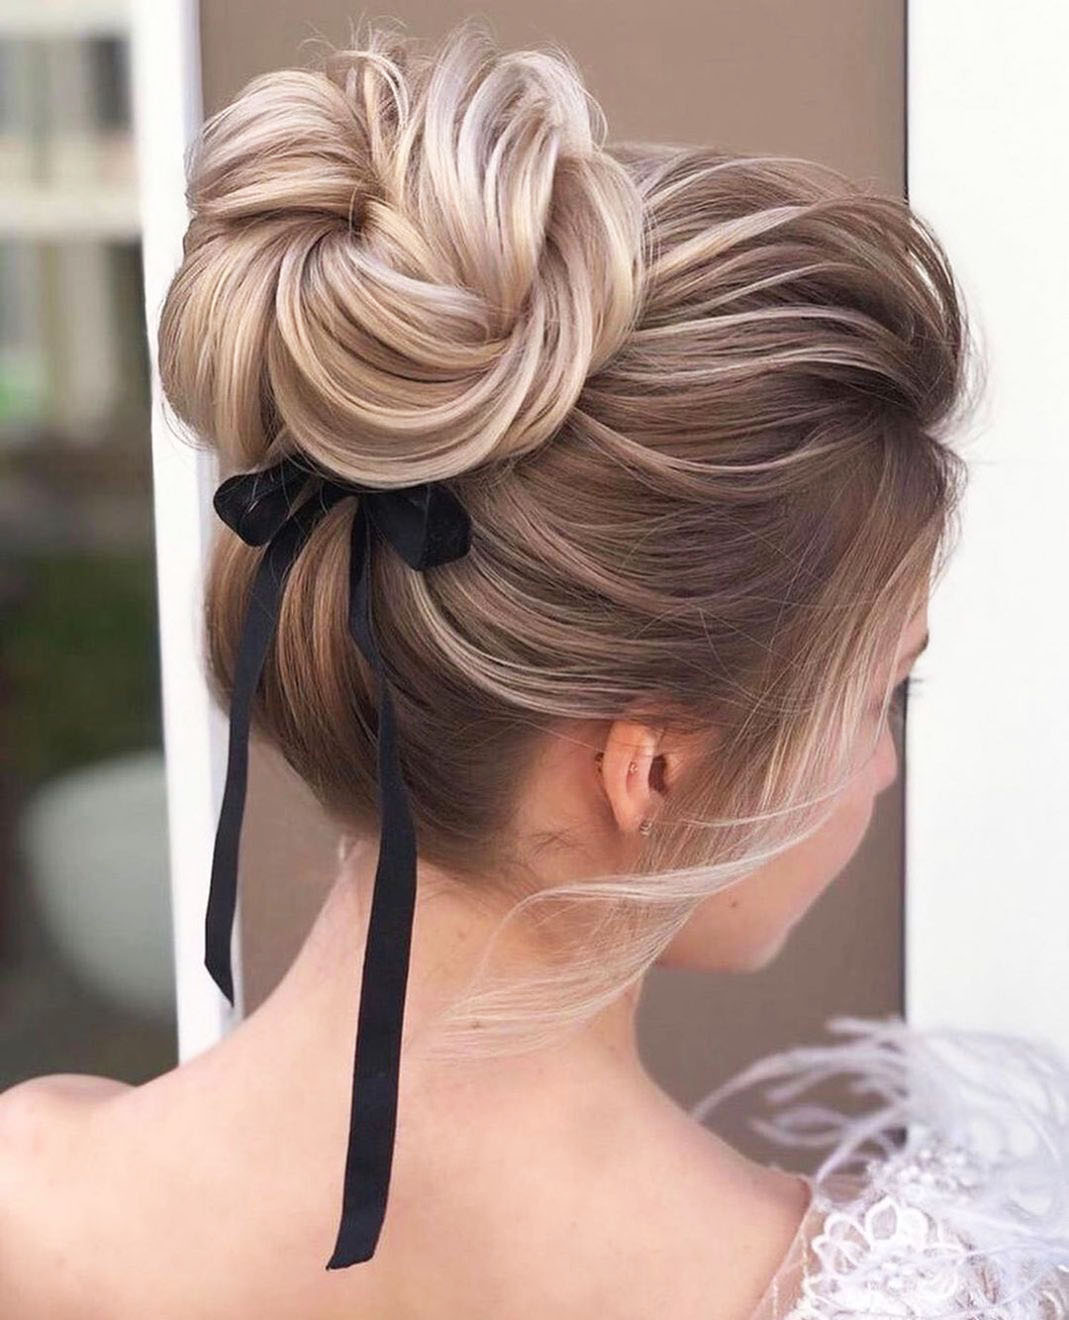 Hairstyles Winter 2020 ideas from hair stylists 15 13